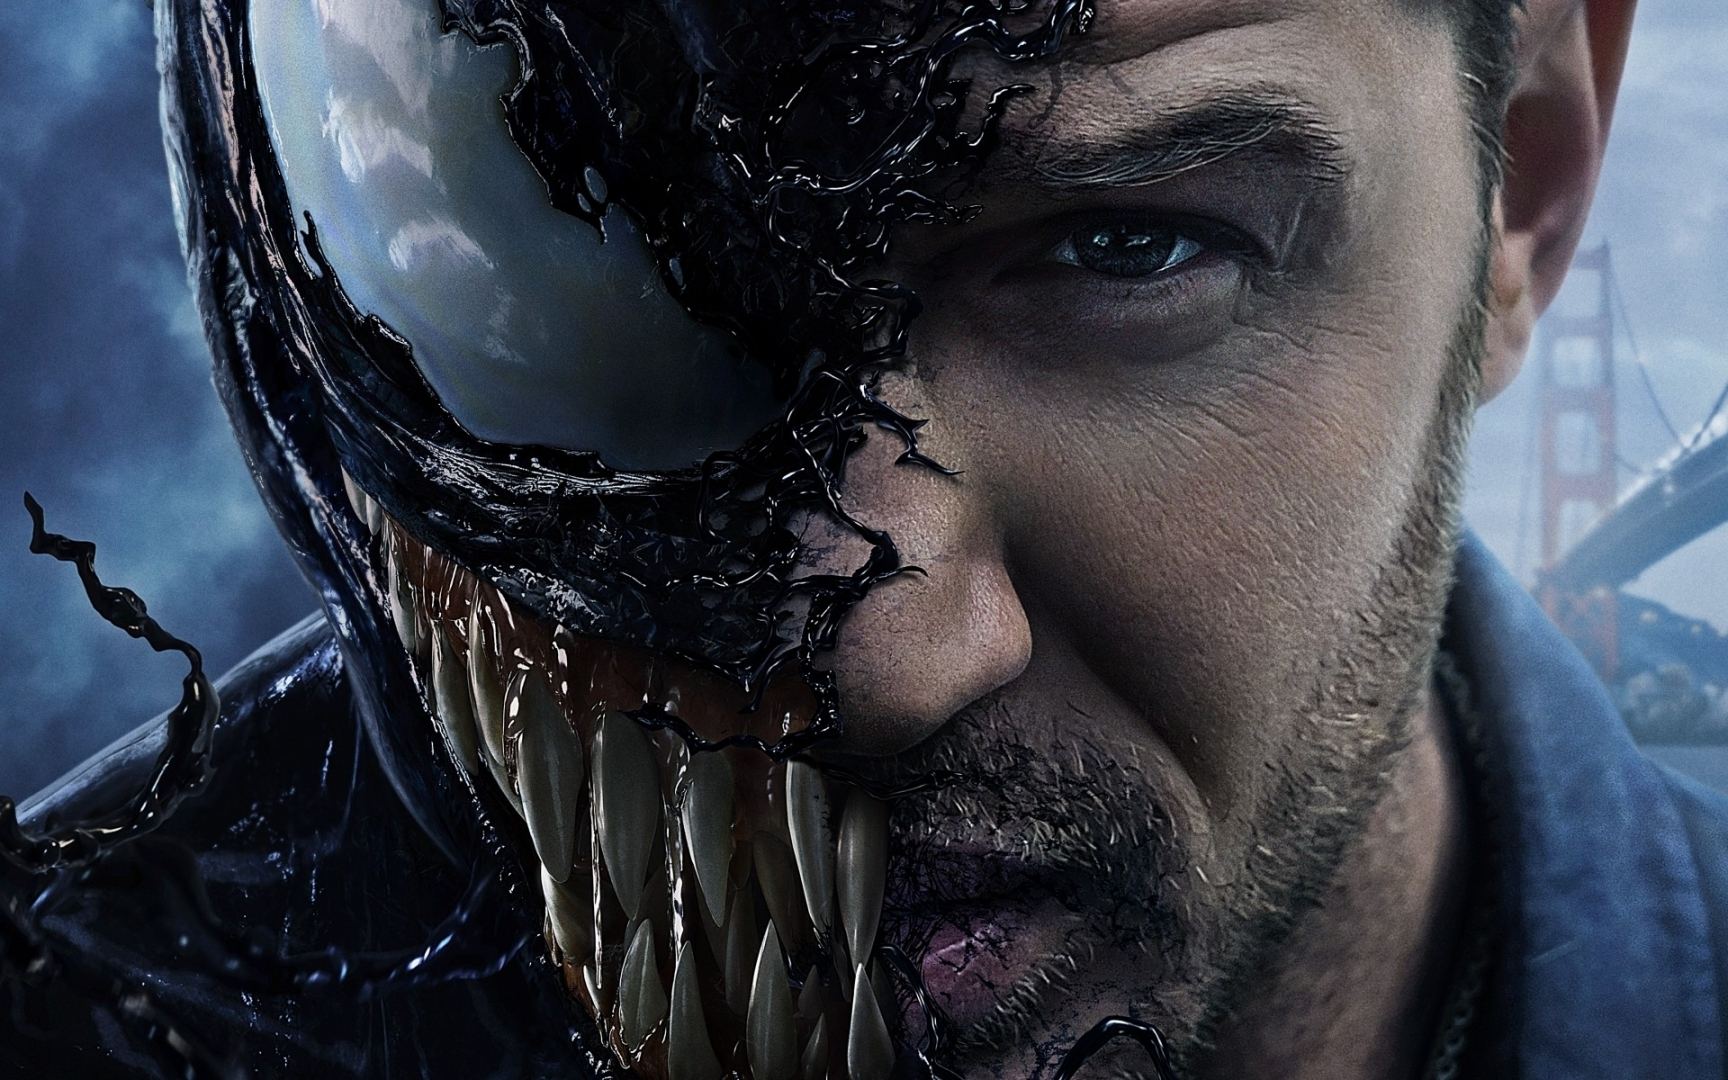 venom-1920x1200-tom-hardy-2018-marvel-comics-5k-13479.jpg